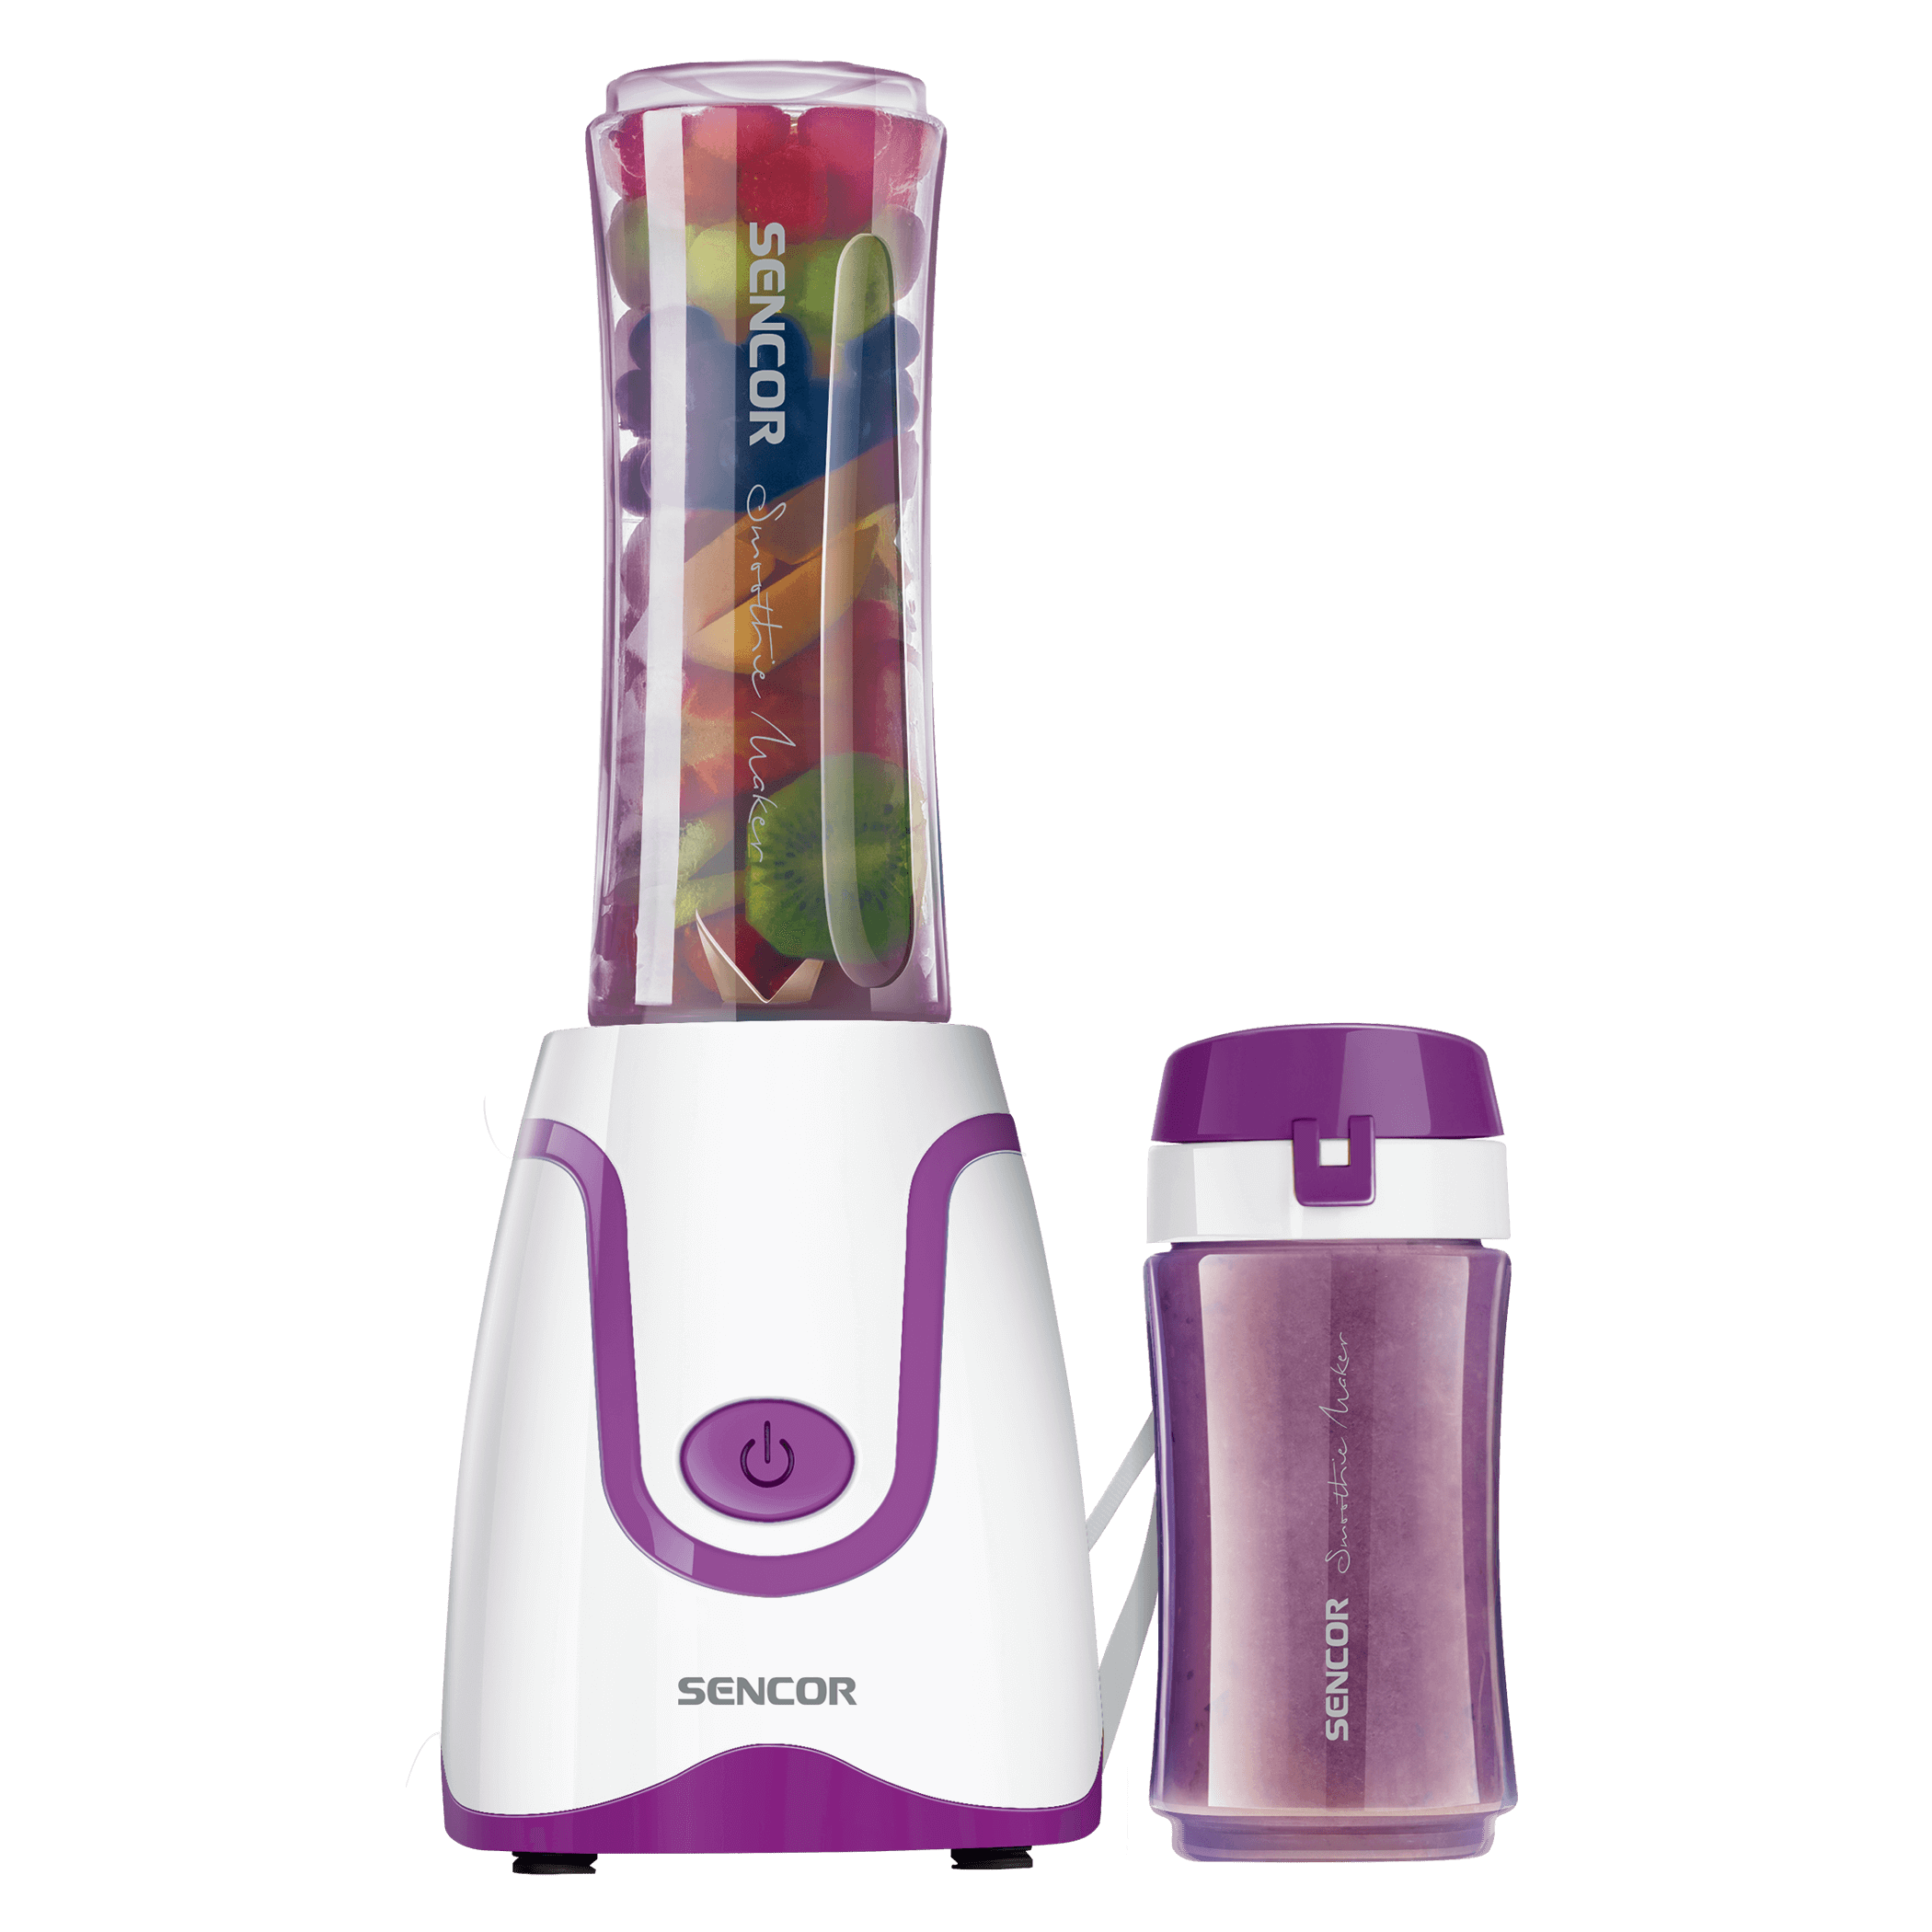 SENCOR_Smoothie_maker_SBL_2215VT.png